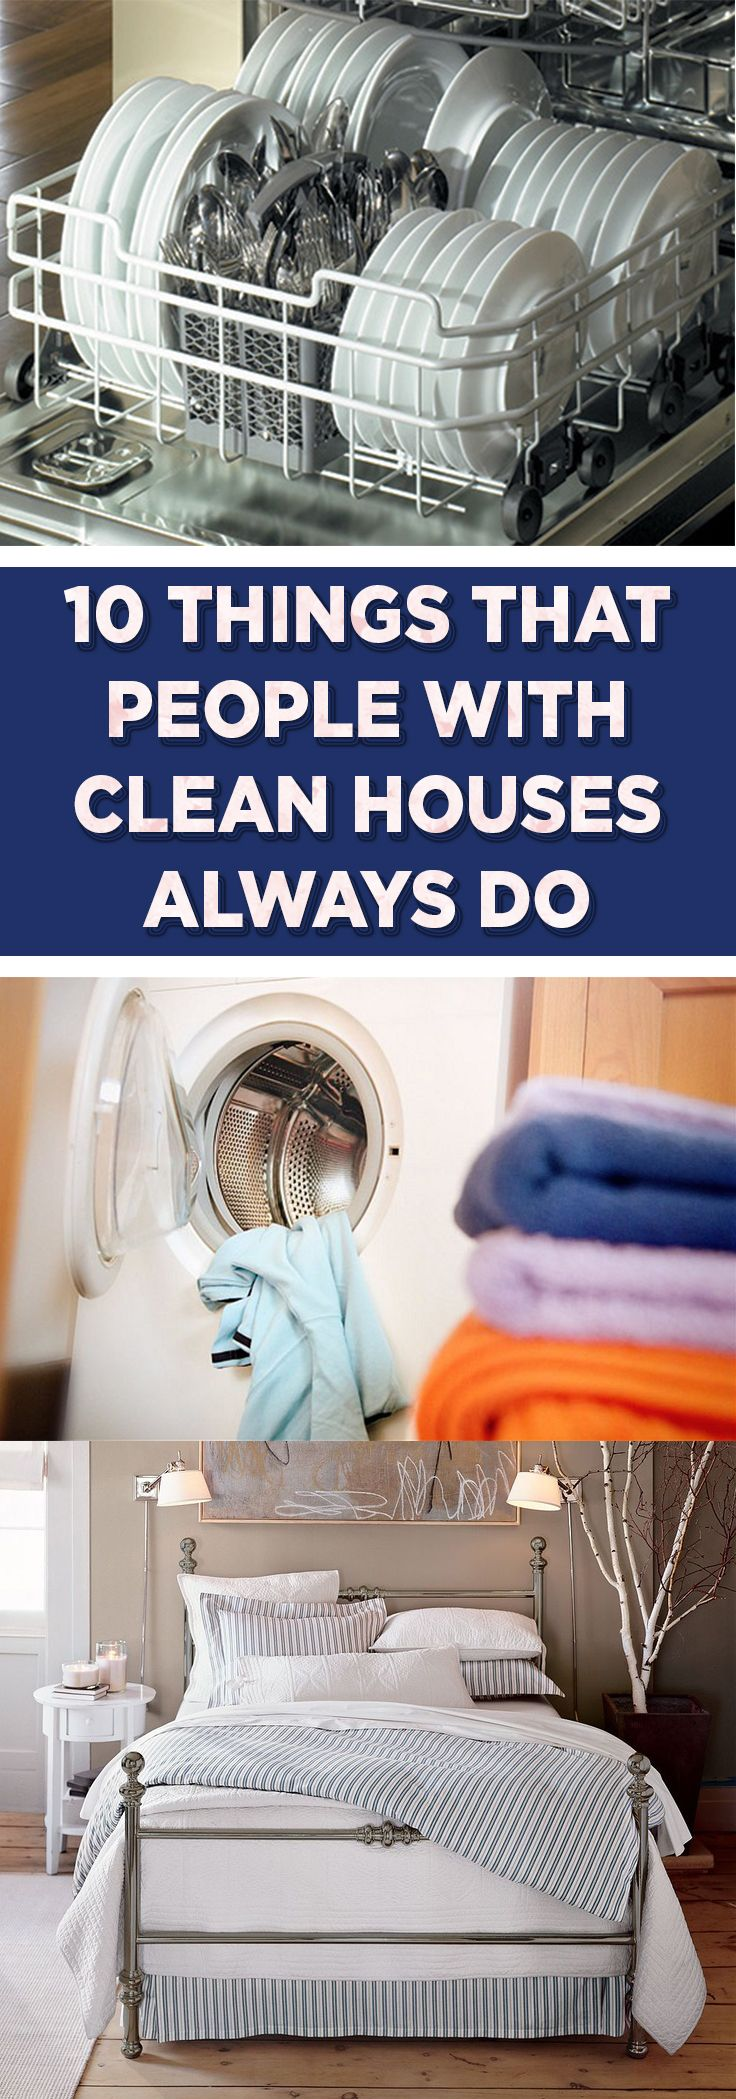 Clean home, clean houses, clean house tips, popular pin, DIY clean home, easy cleaning tips, cleaning hacks.